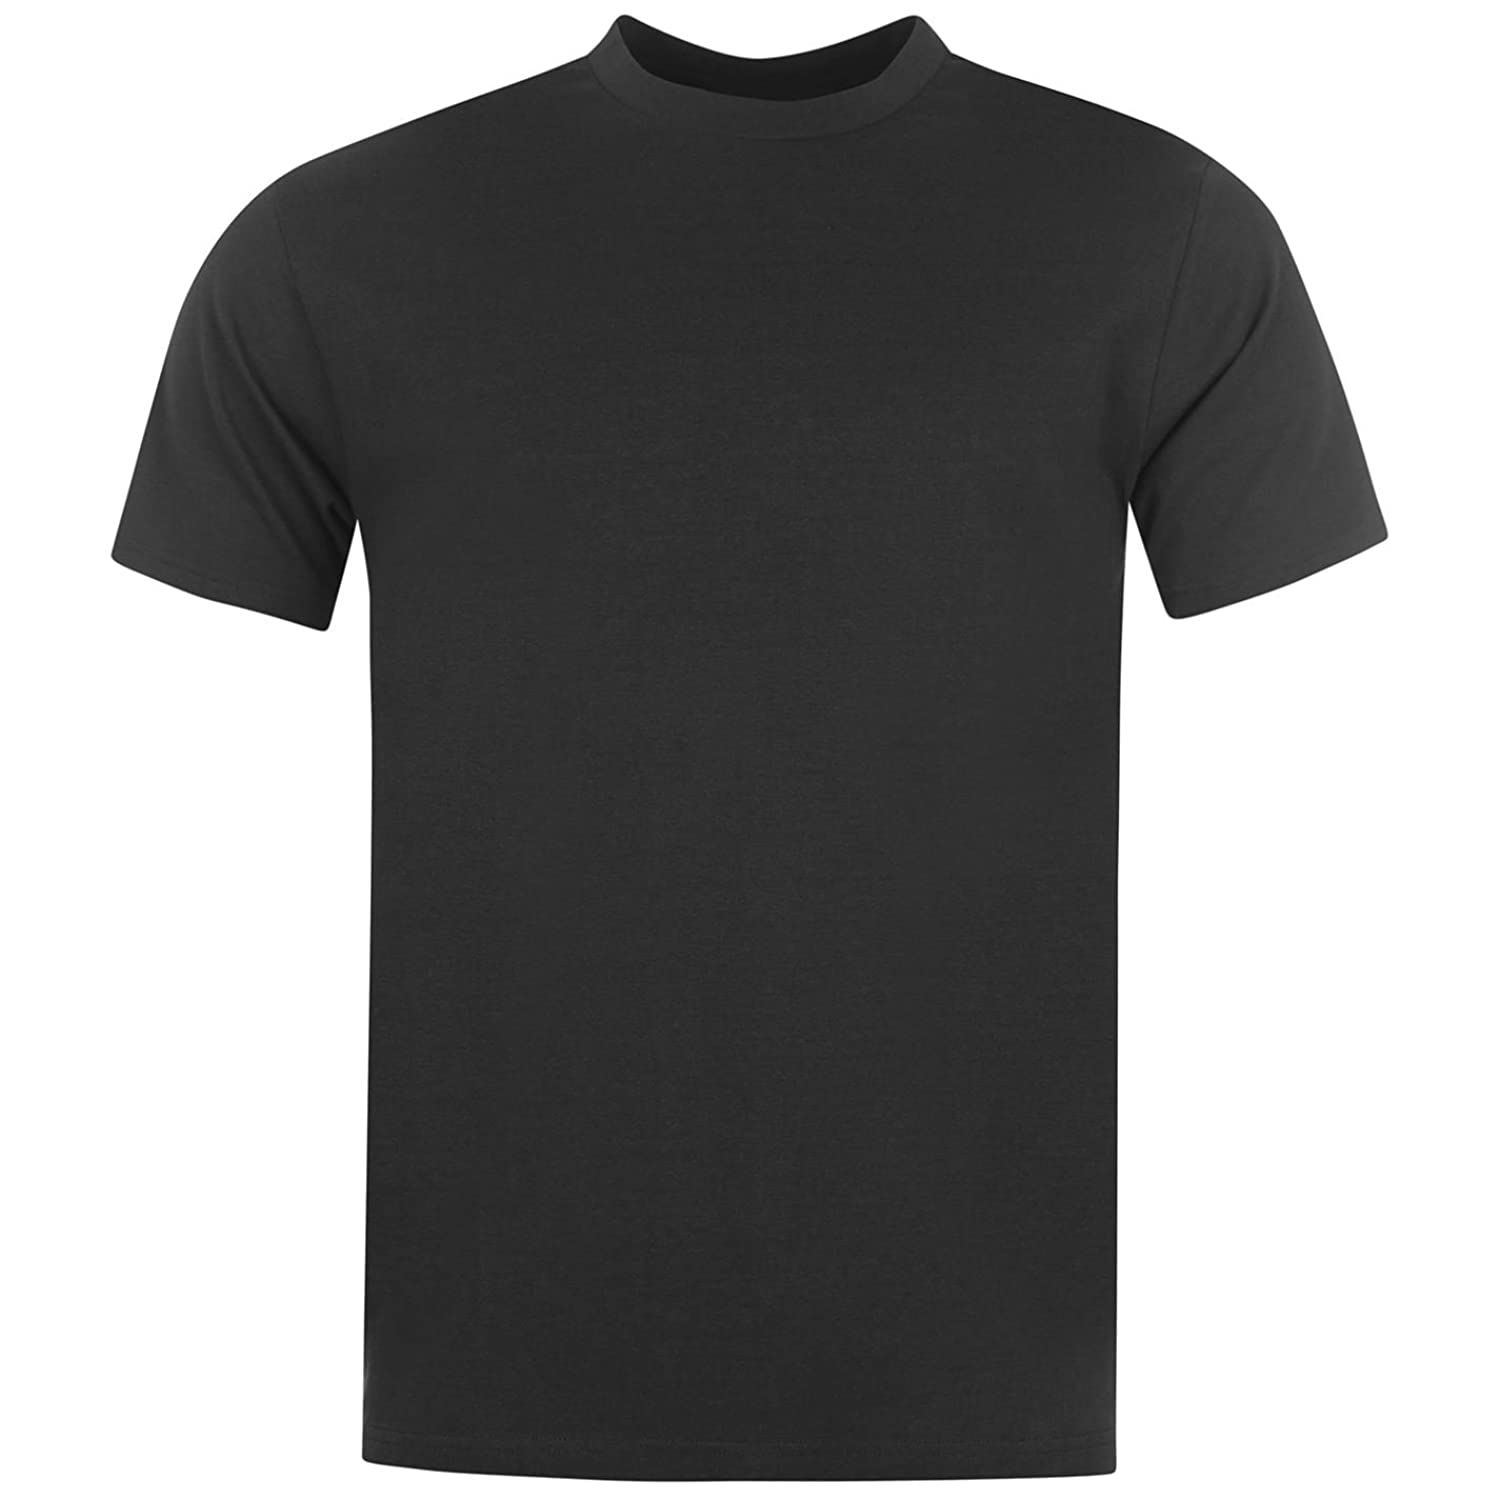 Donnay Mens 3 Pack T Shirt Tee Top Short Sleeve Crew Neck Casual Clothing:  Amazon.co.uk: Clothing